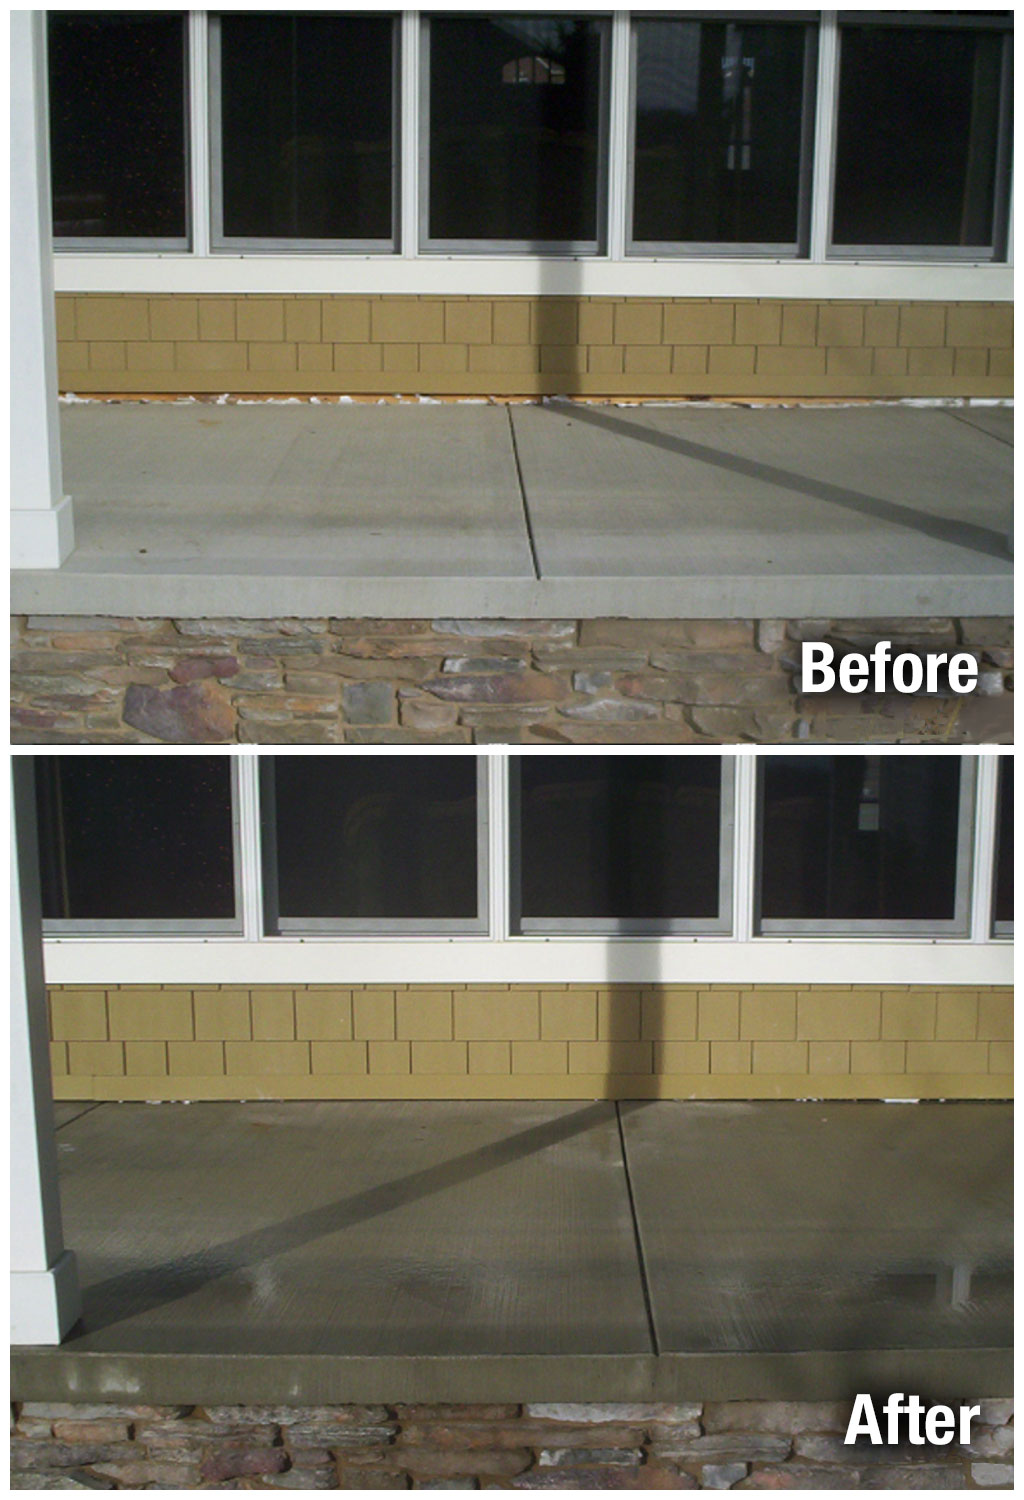 A-1 Concrete Leveling Colorado Springs Porch Leveling